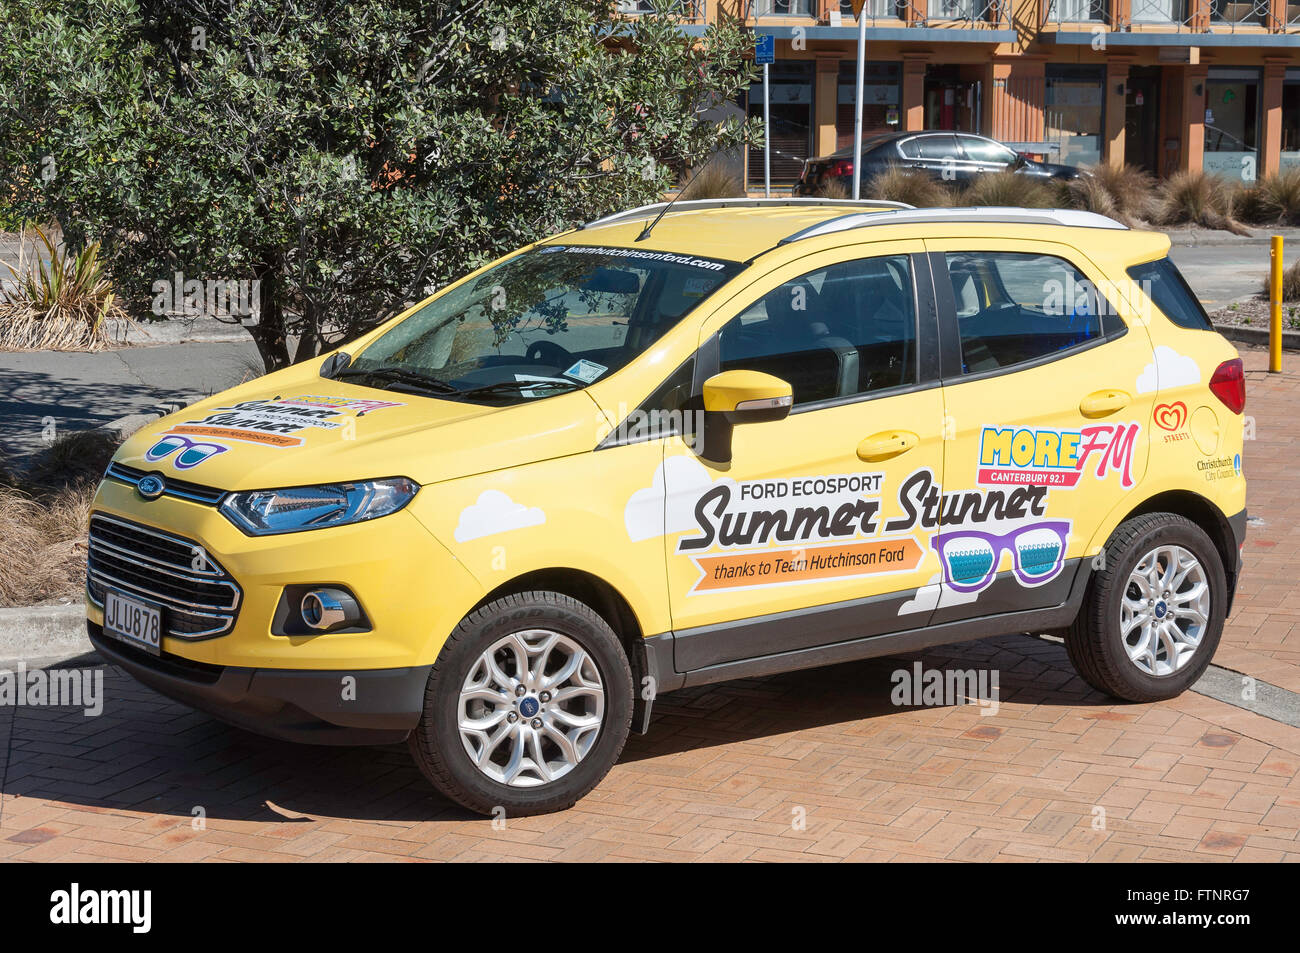 More FM Ford EcoSport Summer Stunner promotion car, New Brighton, Christchurch, Canterbury Region, New Zealand. - Stock Image